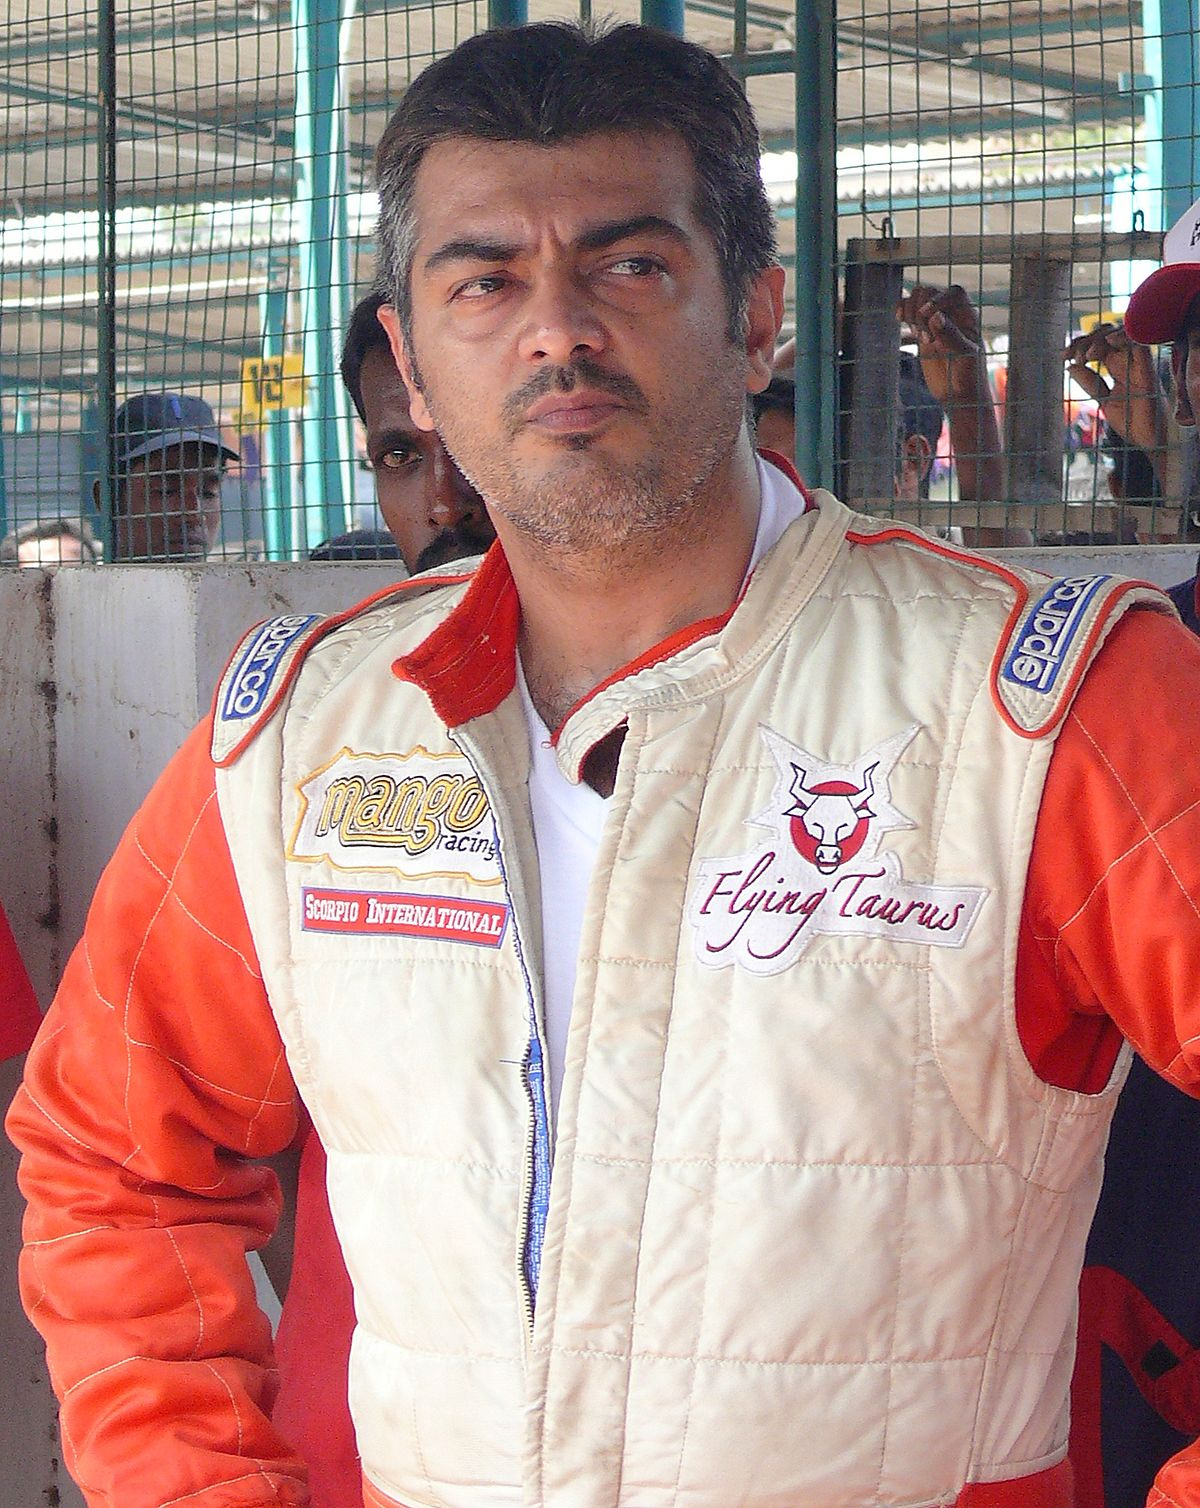 Thala Ajith Latest Beautiful Mobile Desktop Free Background Car Track Mass Hd Pictures